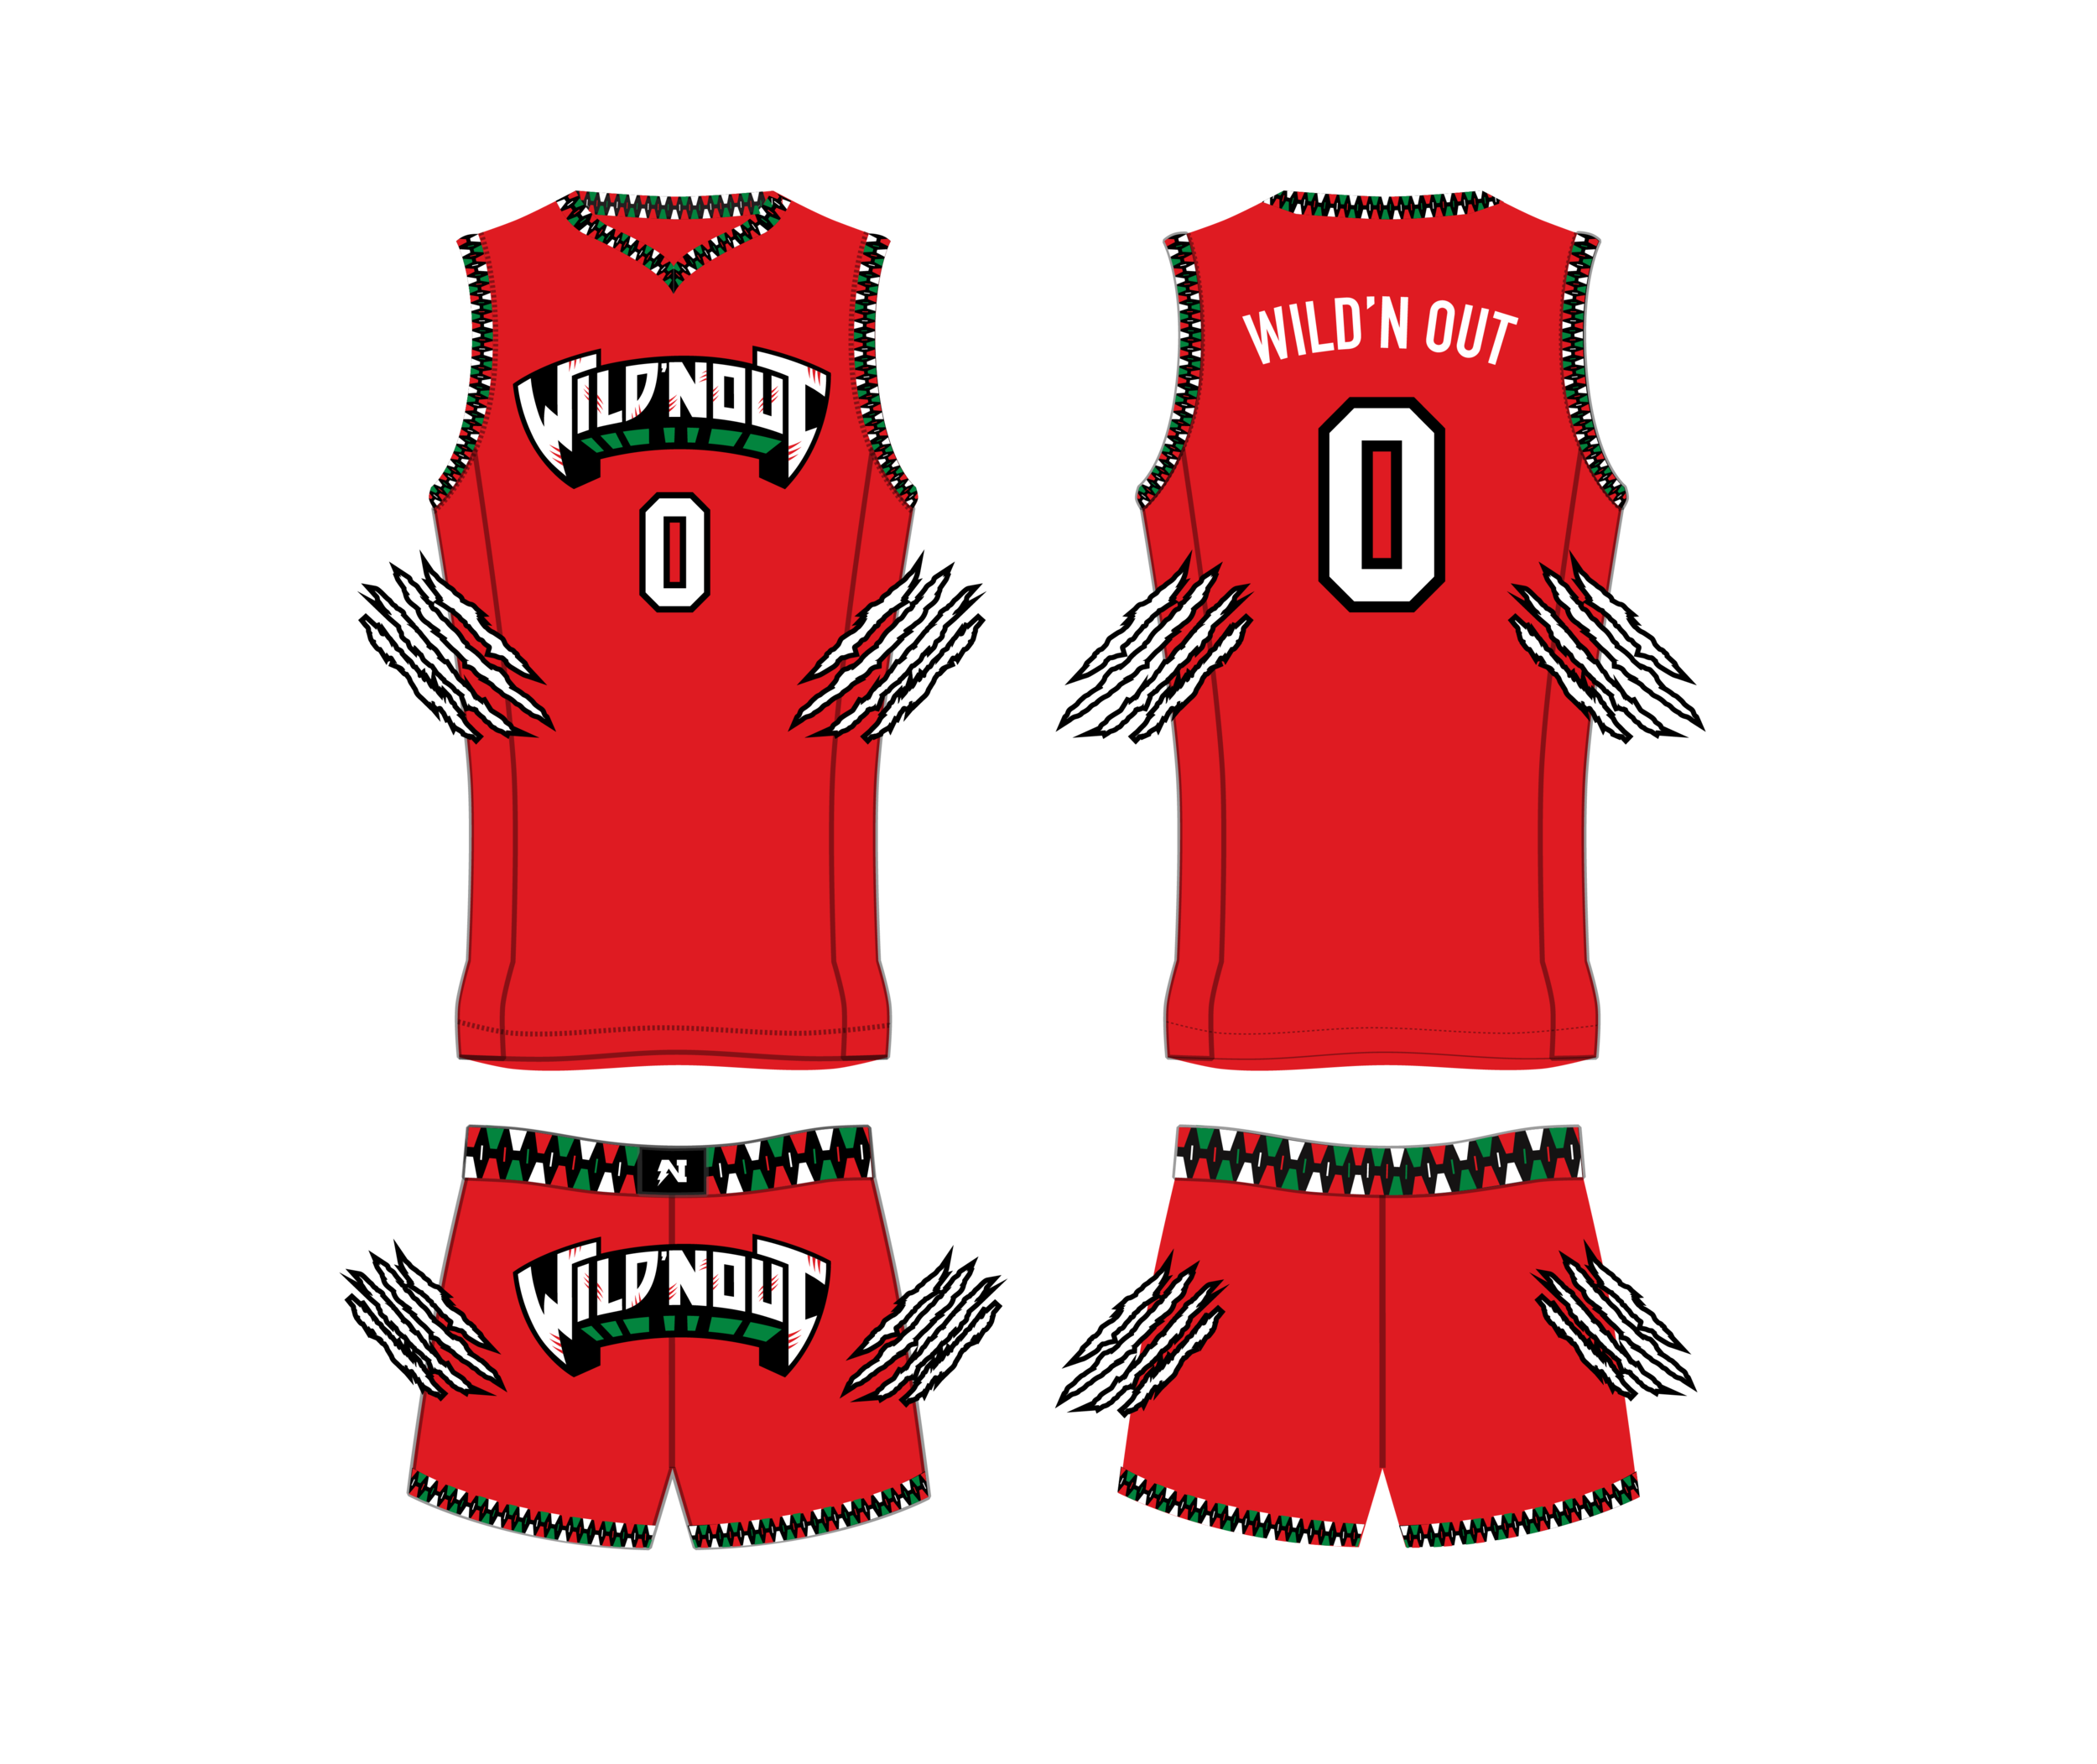 WildNOut_Jerseys [Recovered]-01 copy.png